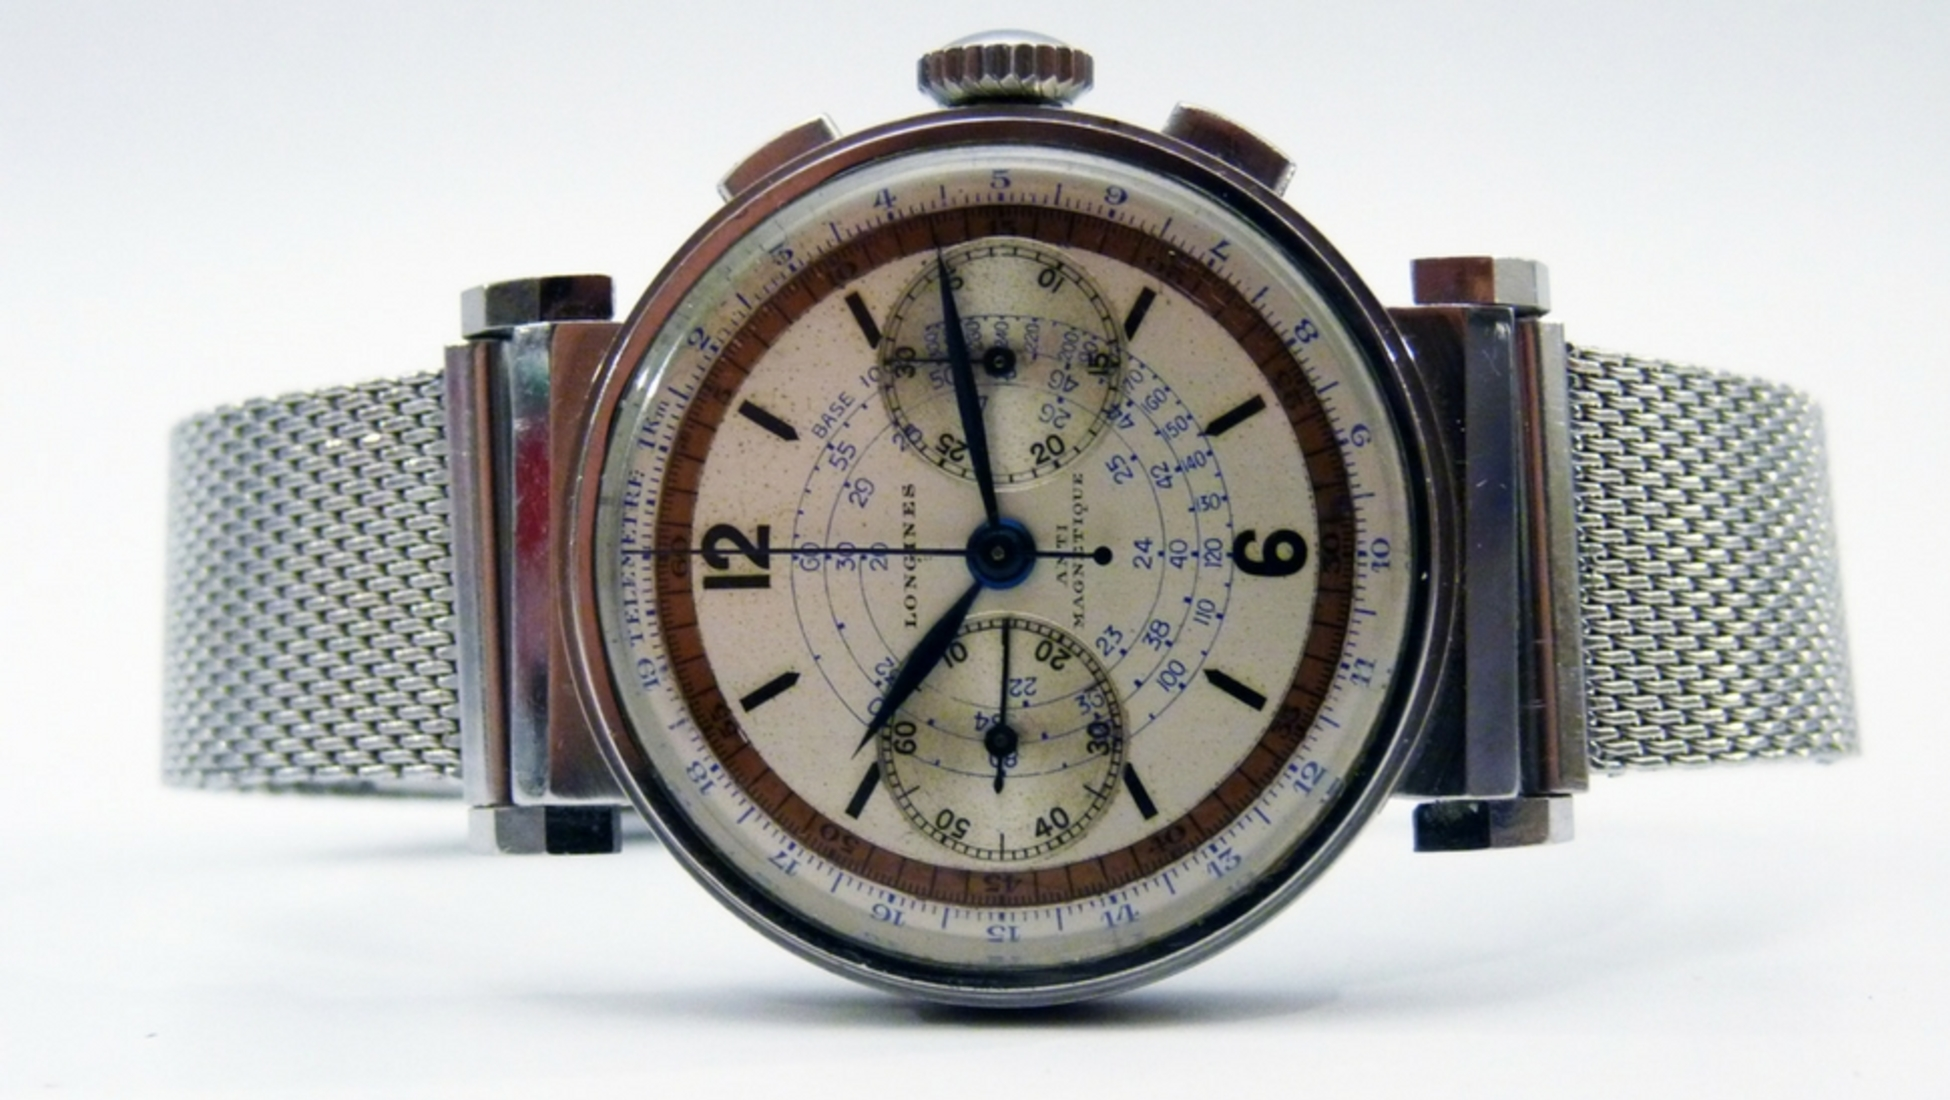 Chronograph Watches: An Experts Guide forecast